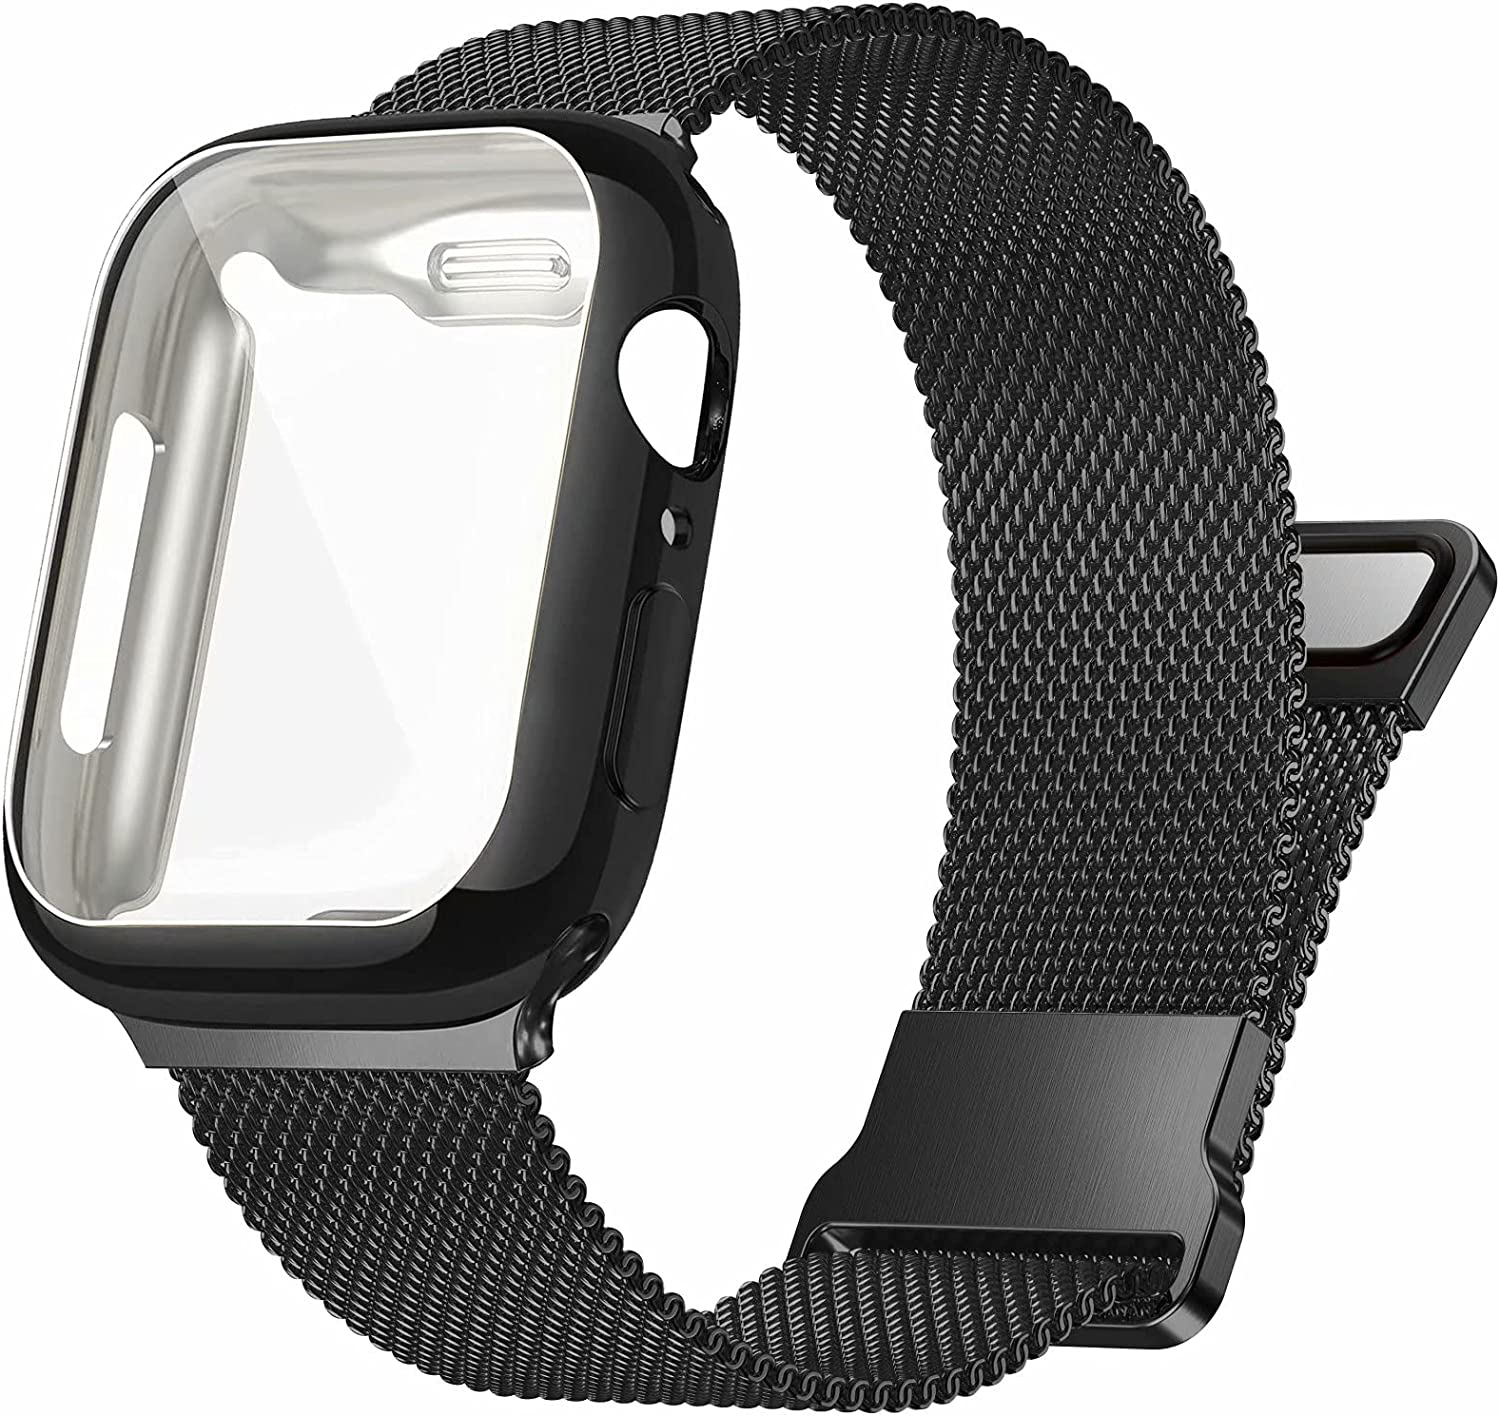 Zsuoop Compatible with Apple Watch Bands 38mm 40mm 42mm 44mm With Screen Protector Case,Magnetic Mesh Stainless Steel Milanese Loop Adjustable Wristband for iWatch Series 6/5/4/3/2/1/SE Women Men